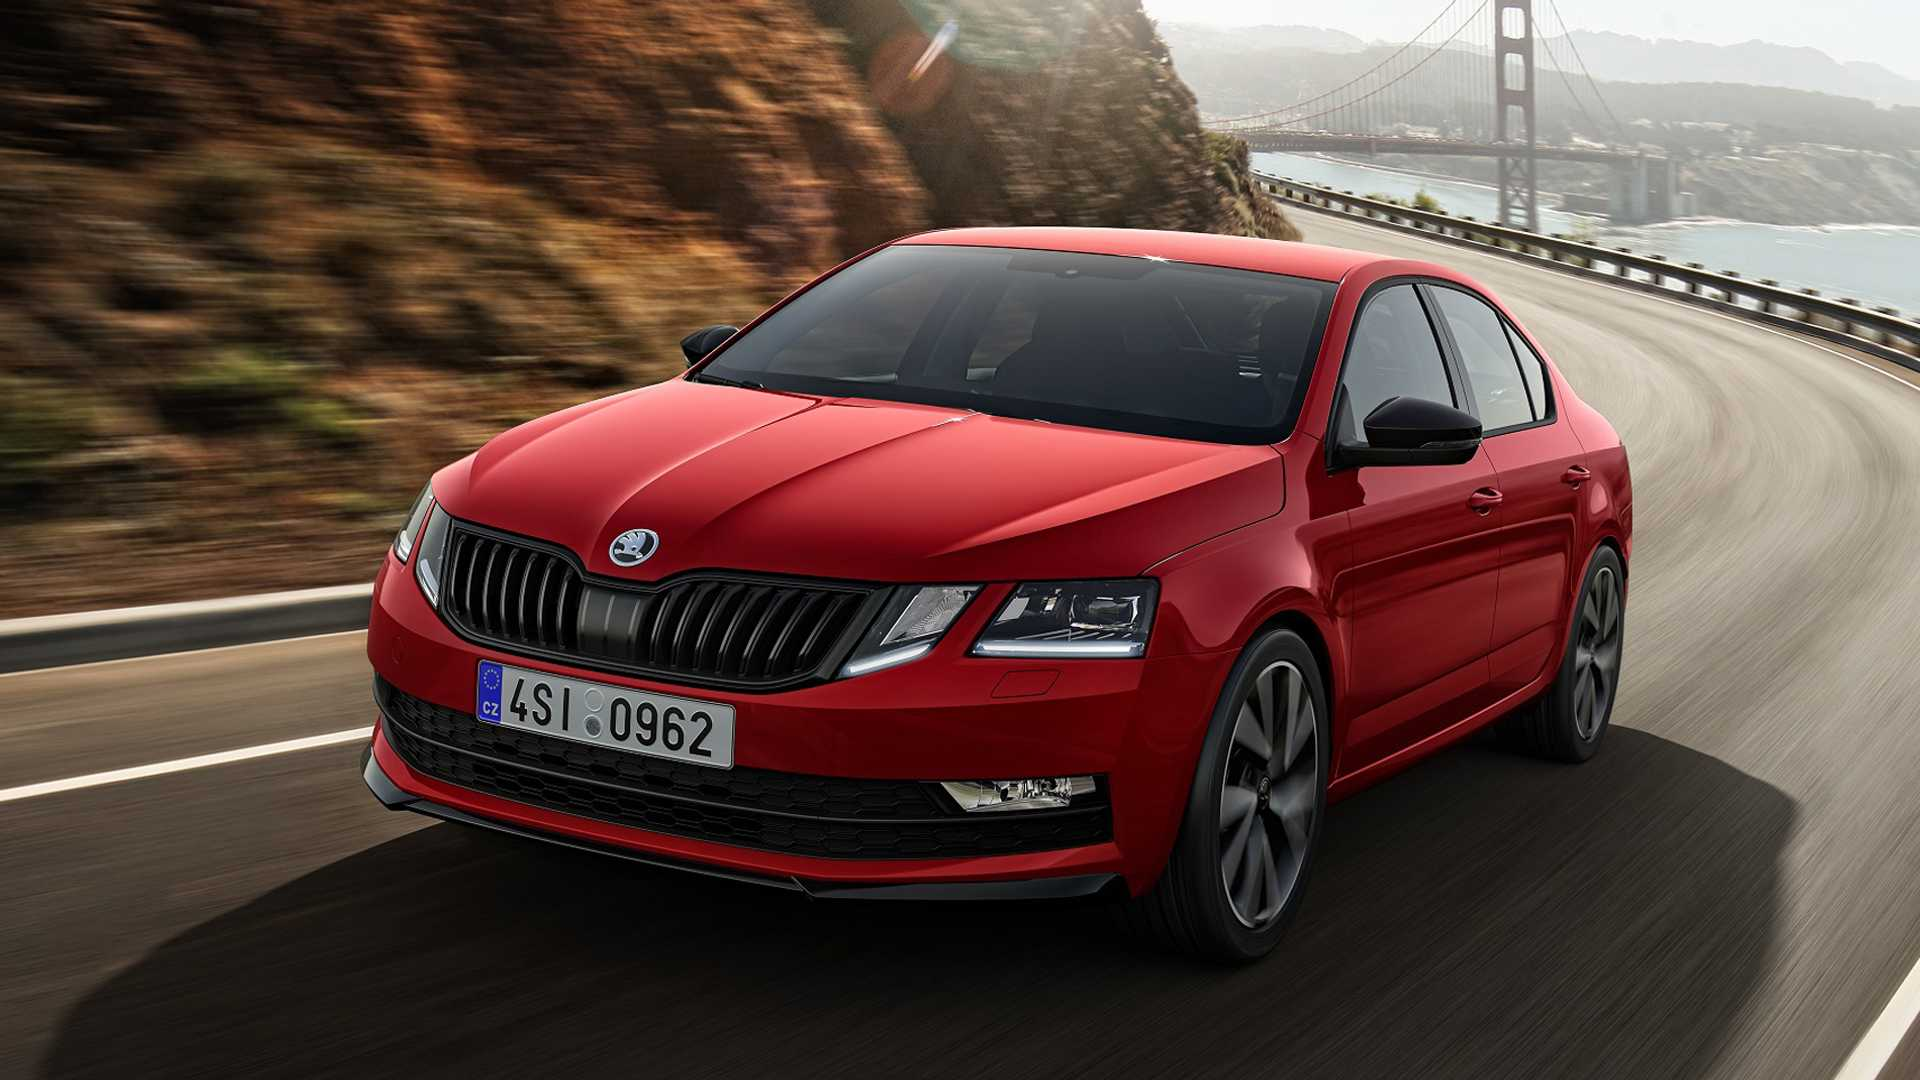 Skoda introduces £23,870 SportLine model to Octavia range